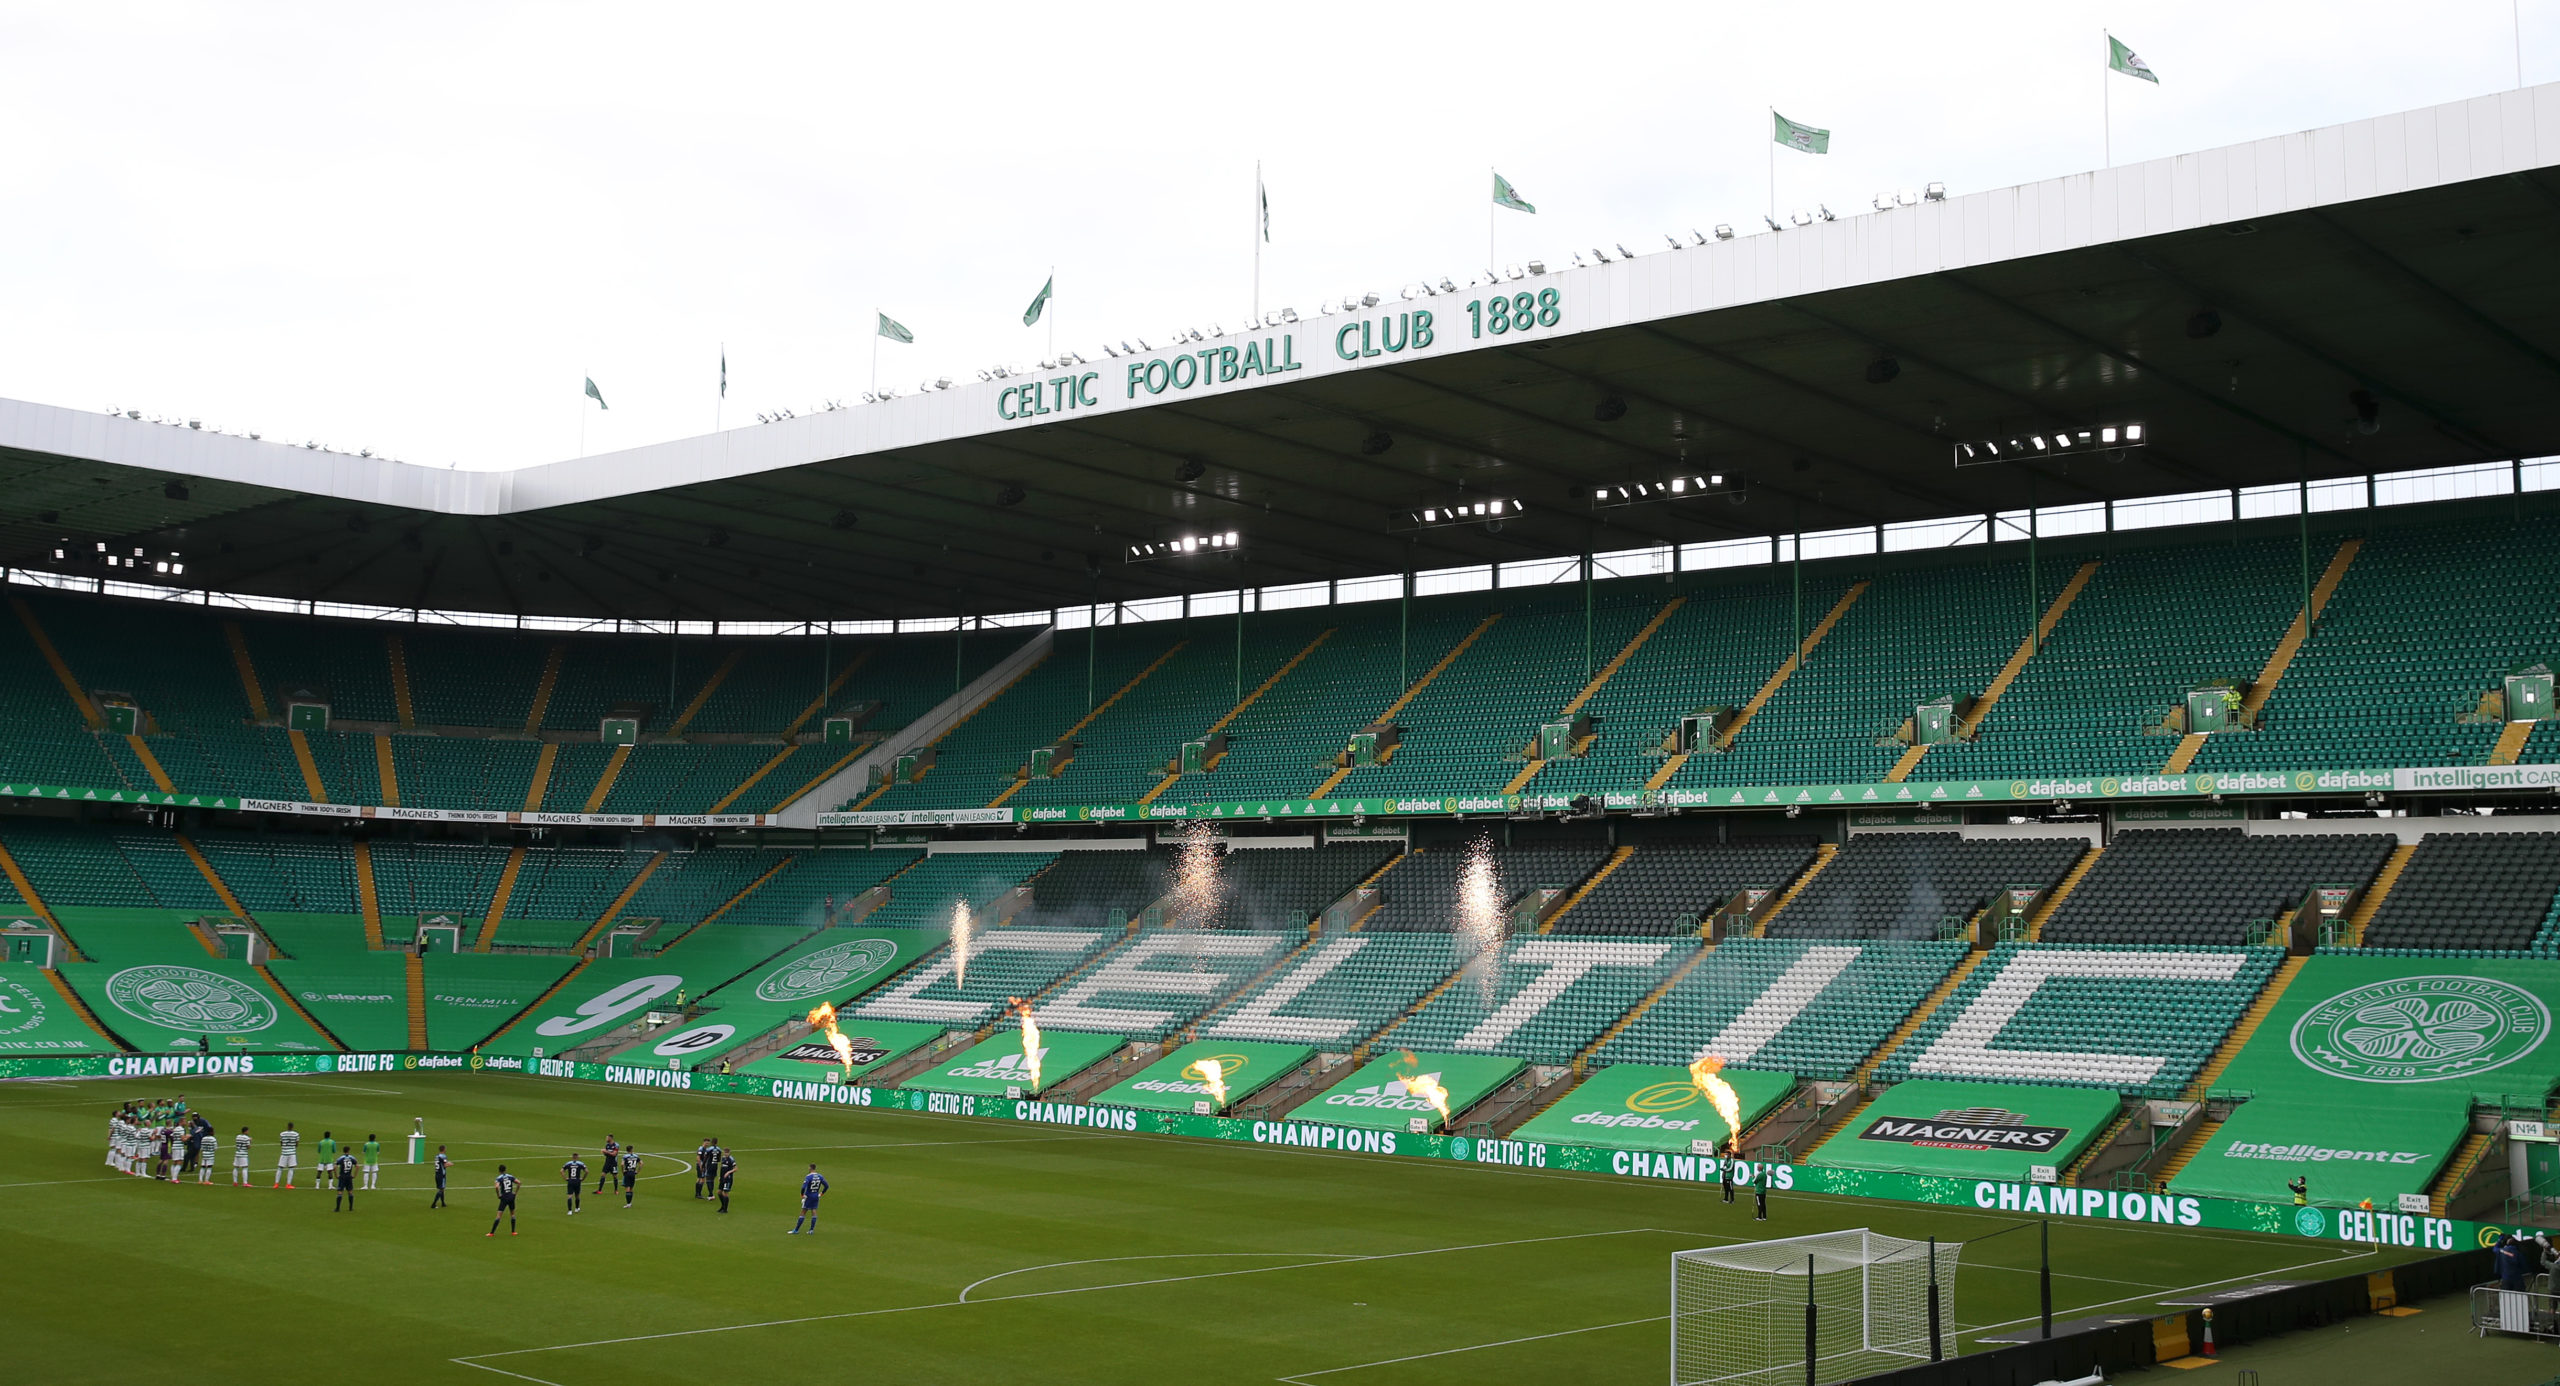 Celtic Park will welcome fans back one day